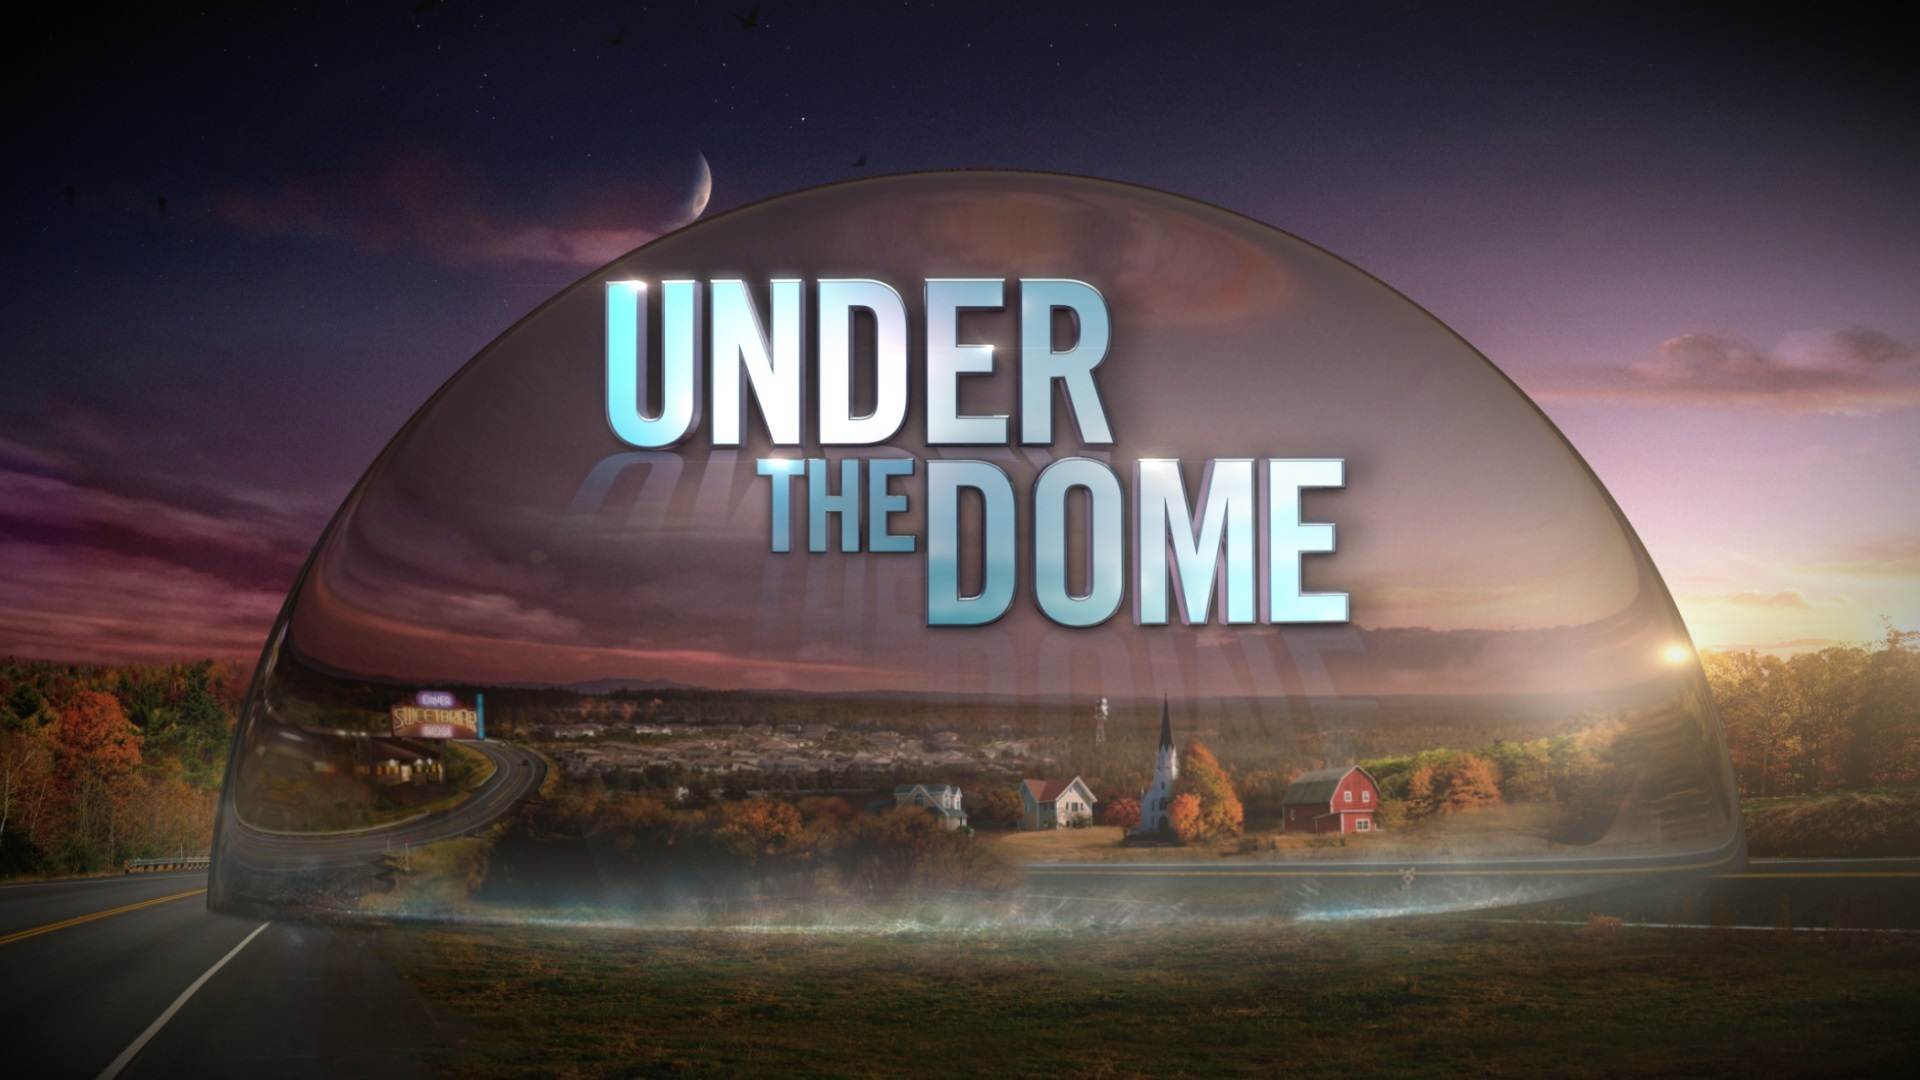 Under The Dome Fondo De Pantalla Hd Fondo De Escritorio